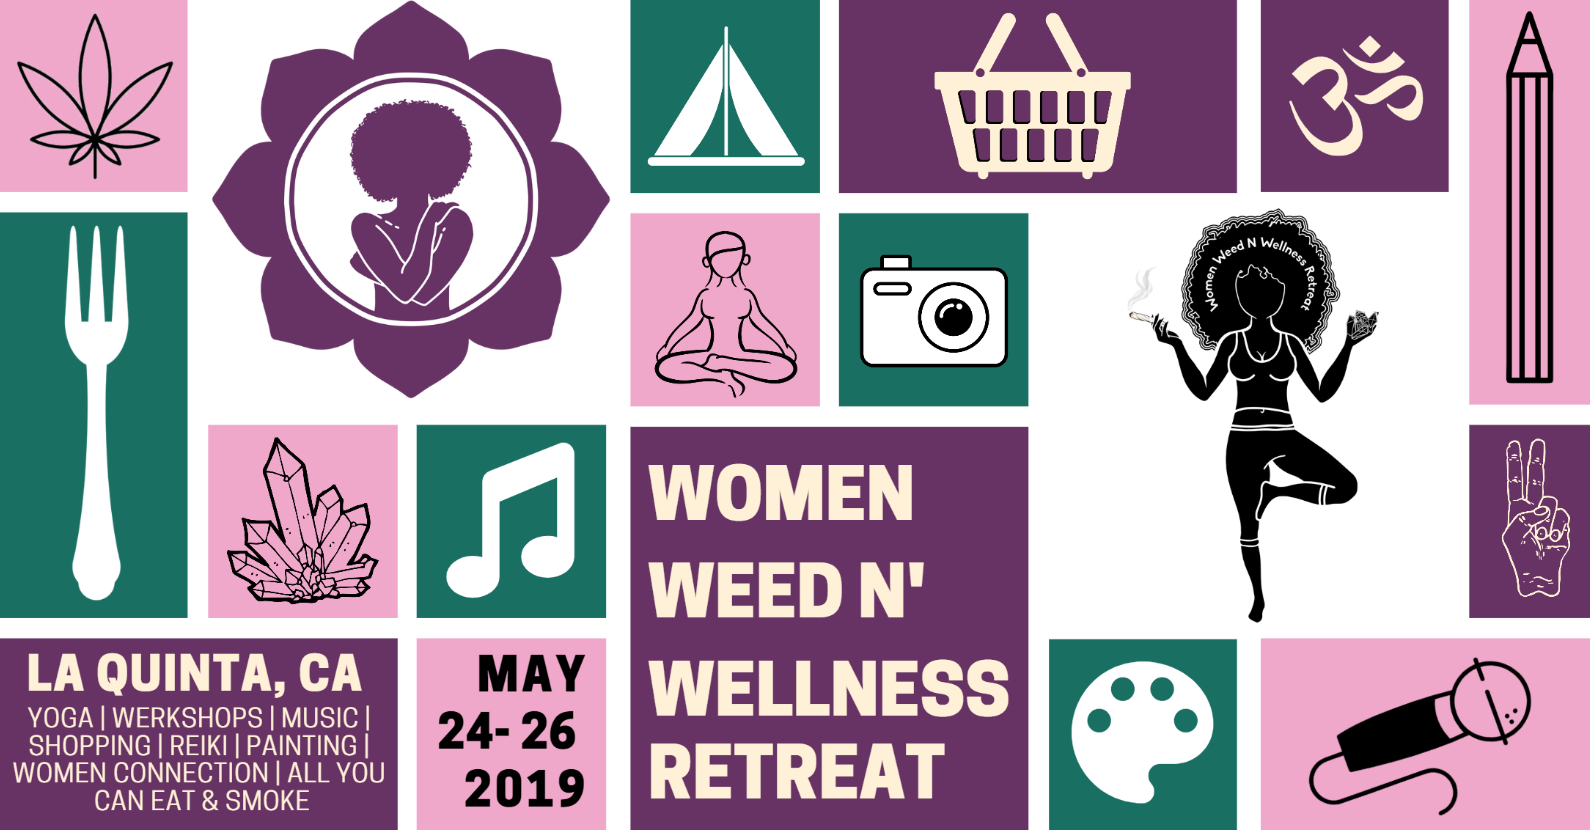 Women Weed n Wellness Retreat